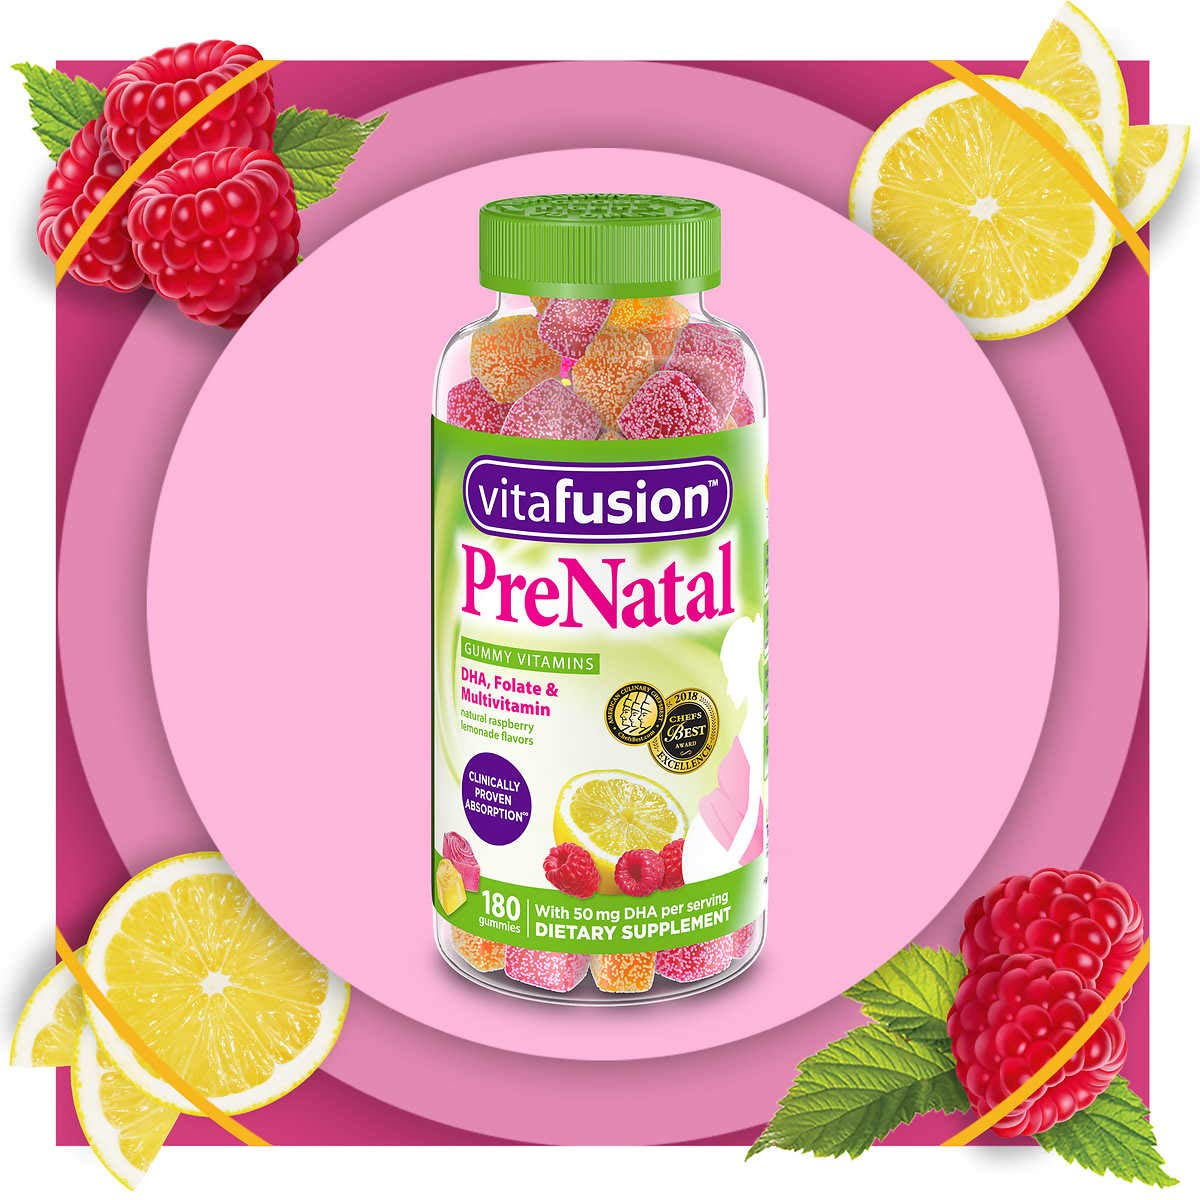 Vitafusion Prenatal Gummy Vitamins, 180 Count (Packaging May Vary)